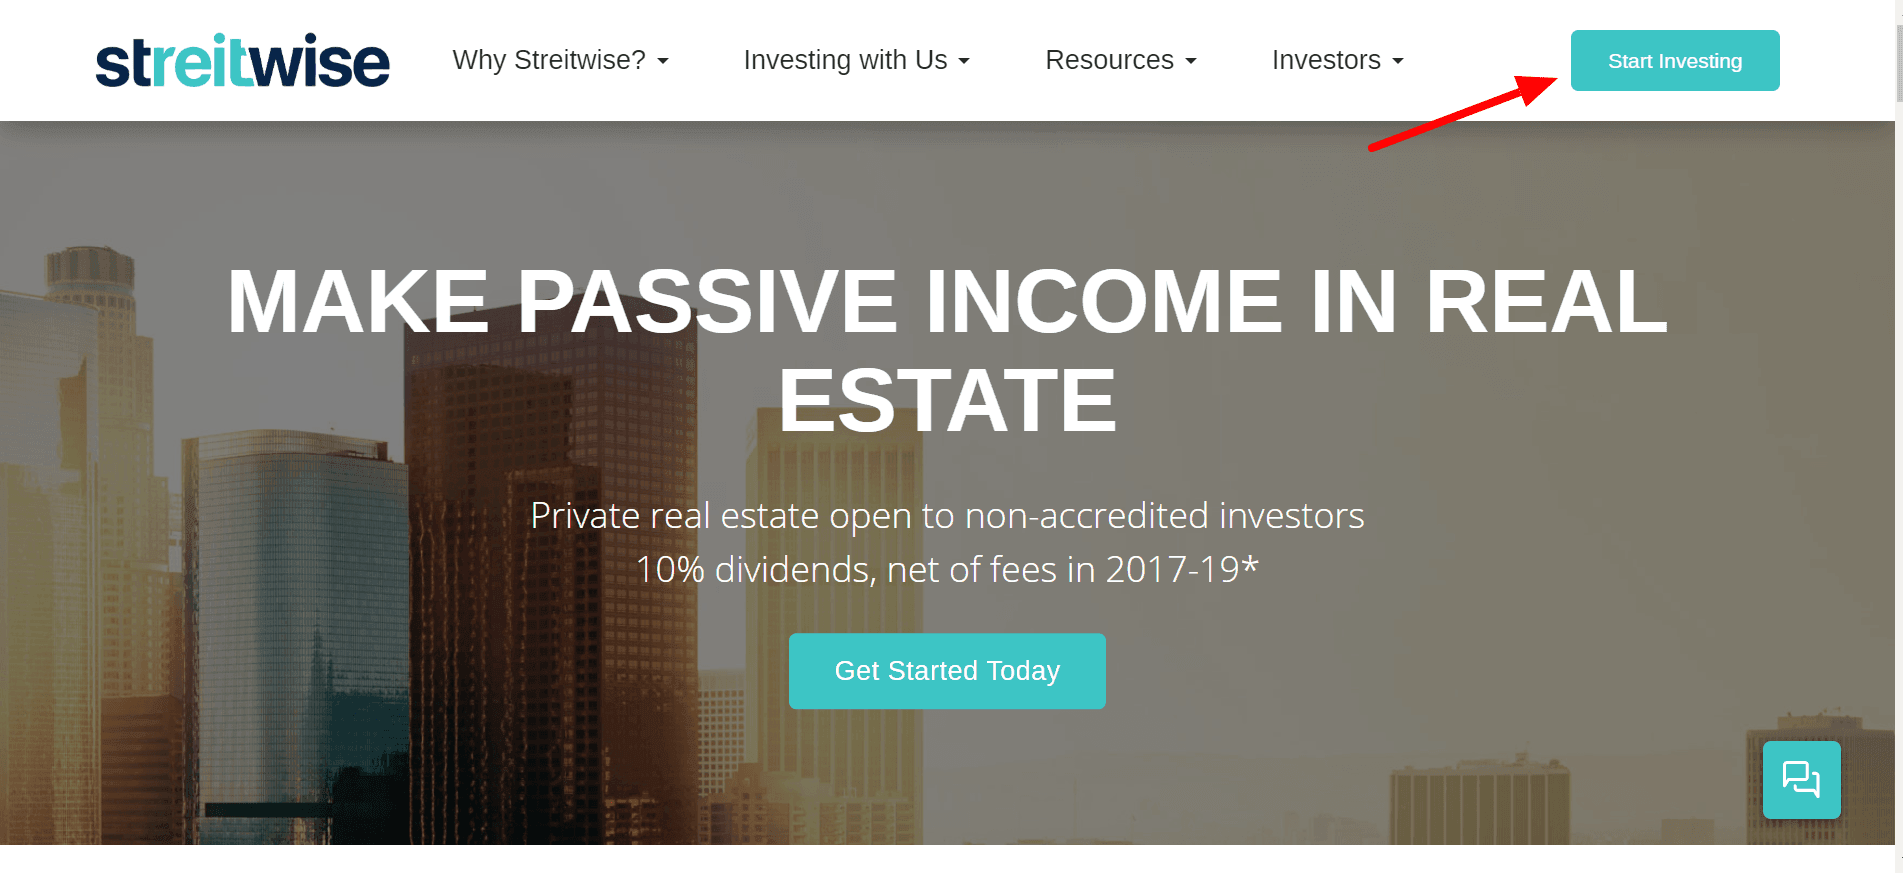 Streitwise Review: My Experience Using Streitwise - Start investing